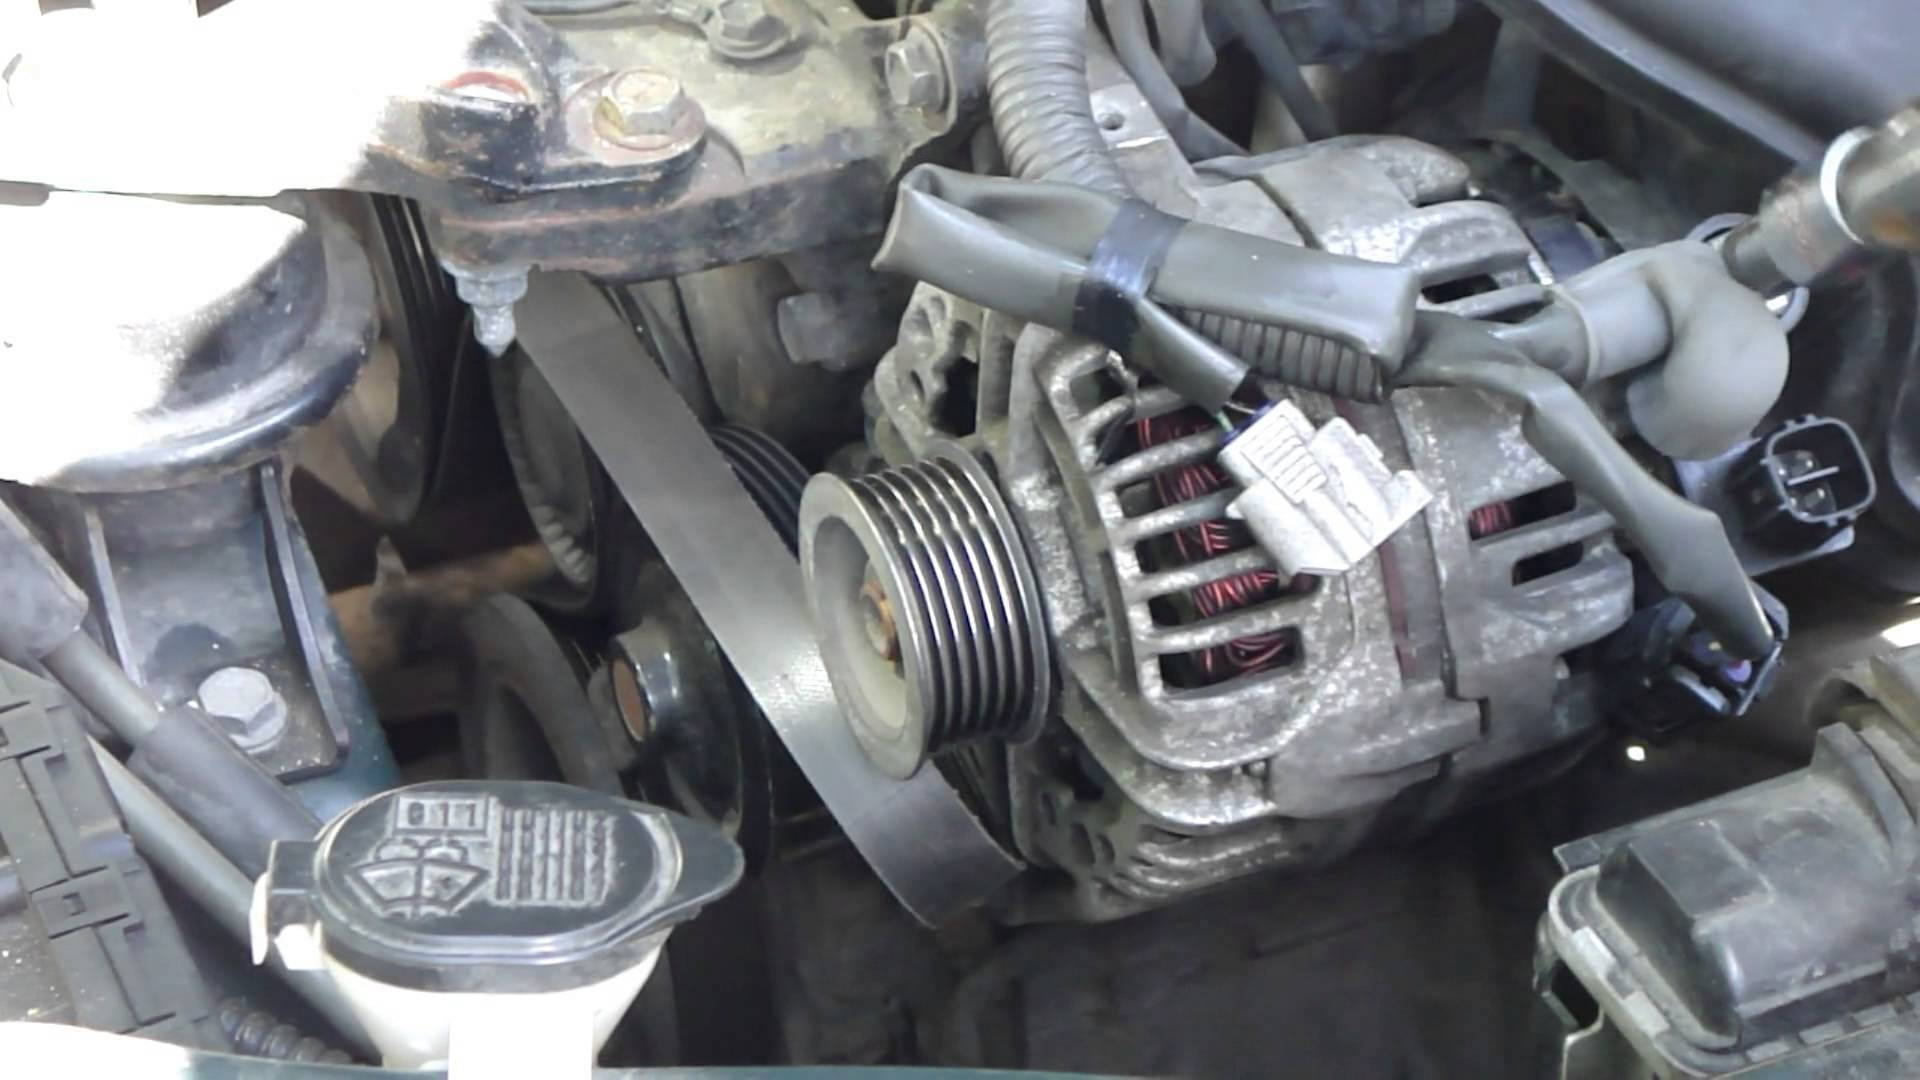 2011 toyota Camry Engine Diagram How to Change Alternator toyota Corolla Vvt I Engine Years 2000 Of 2011 toyota Camry Engine Diagram